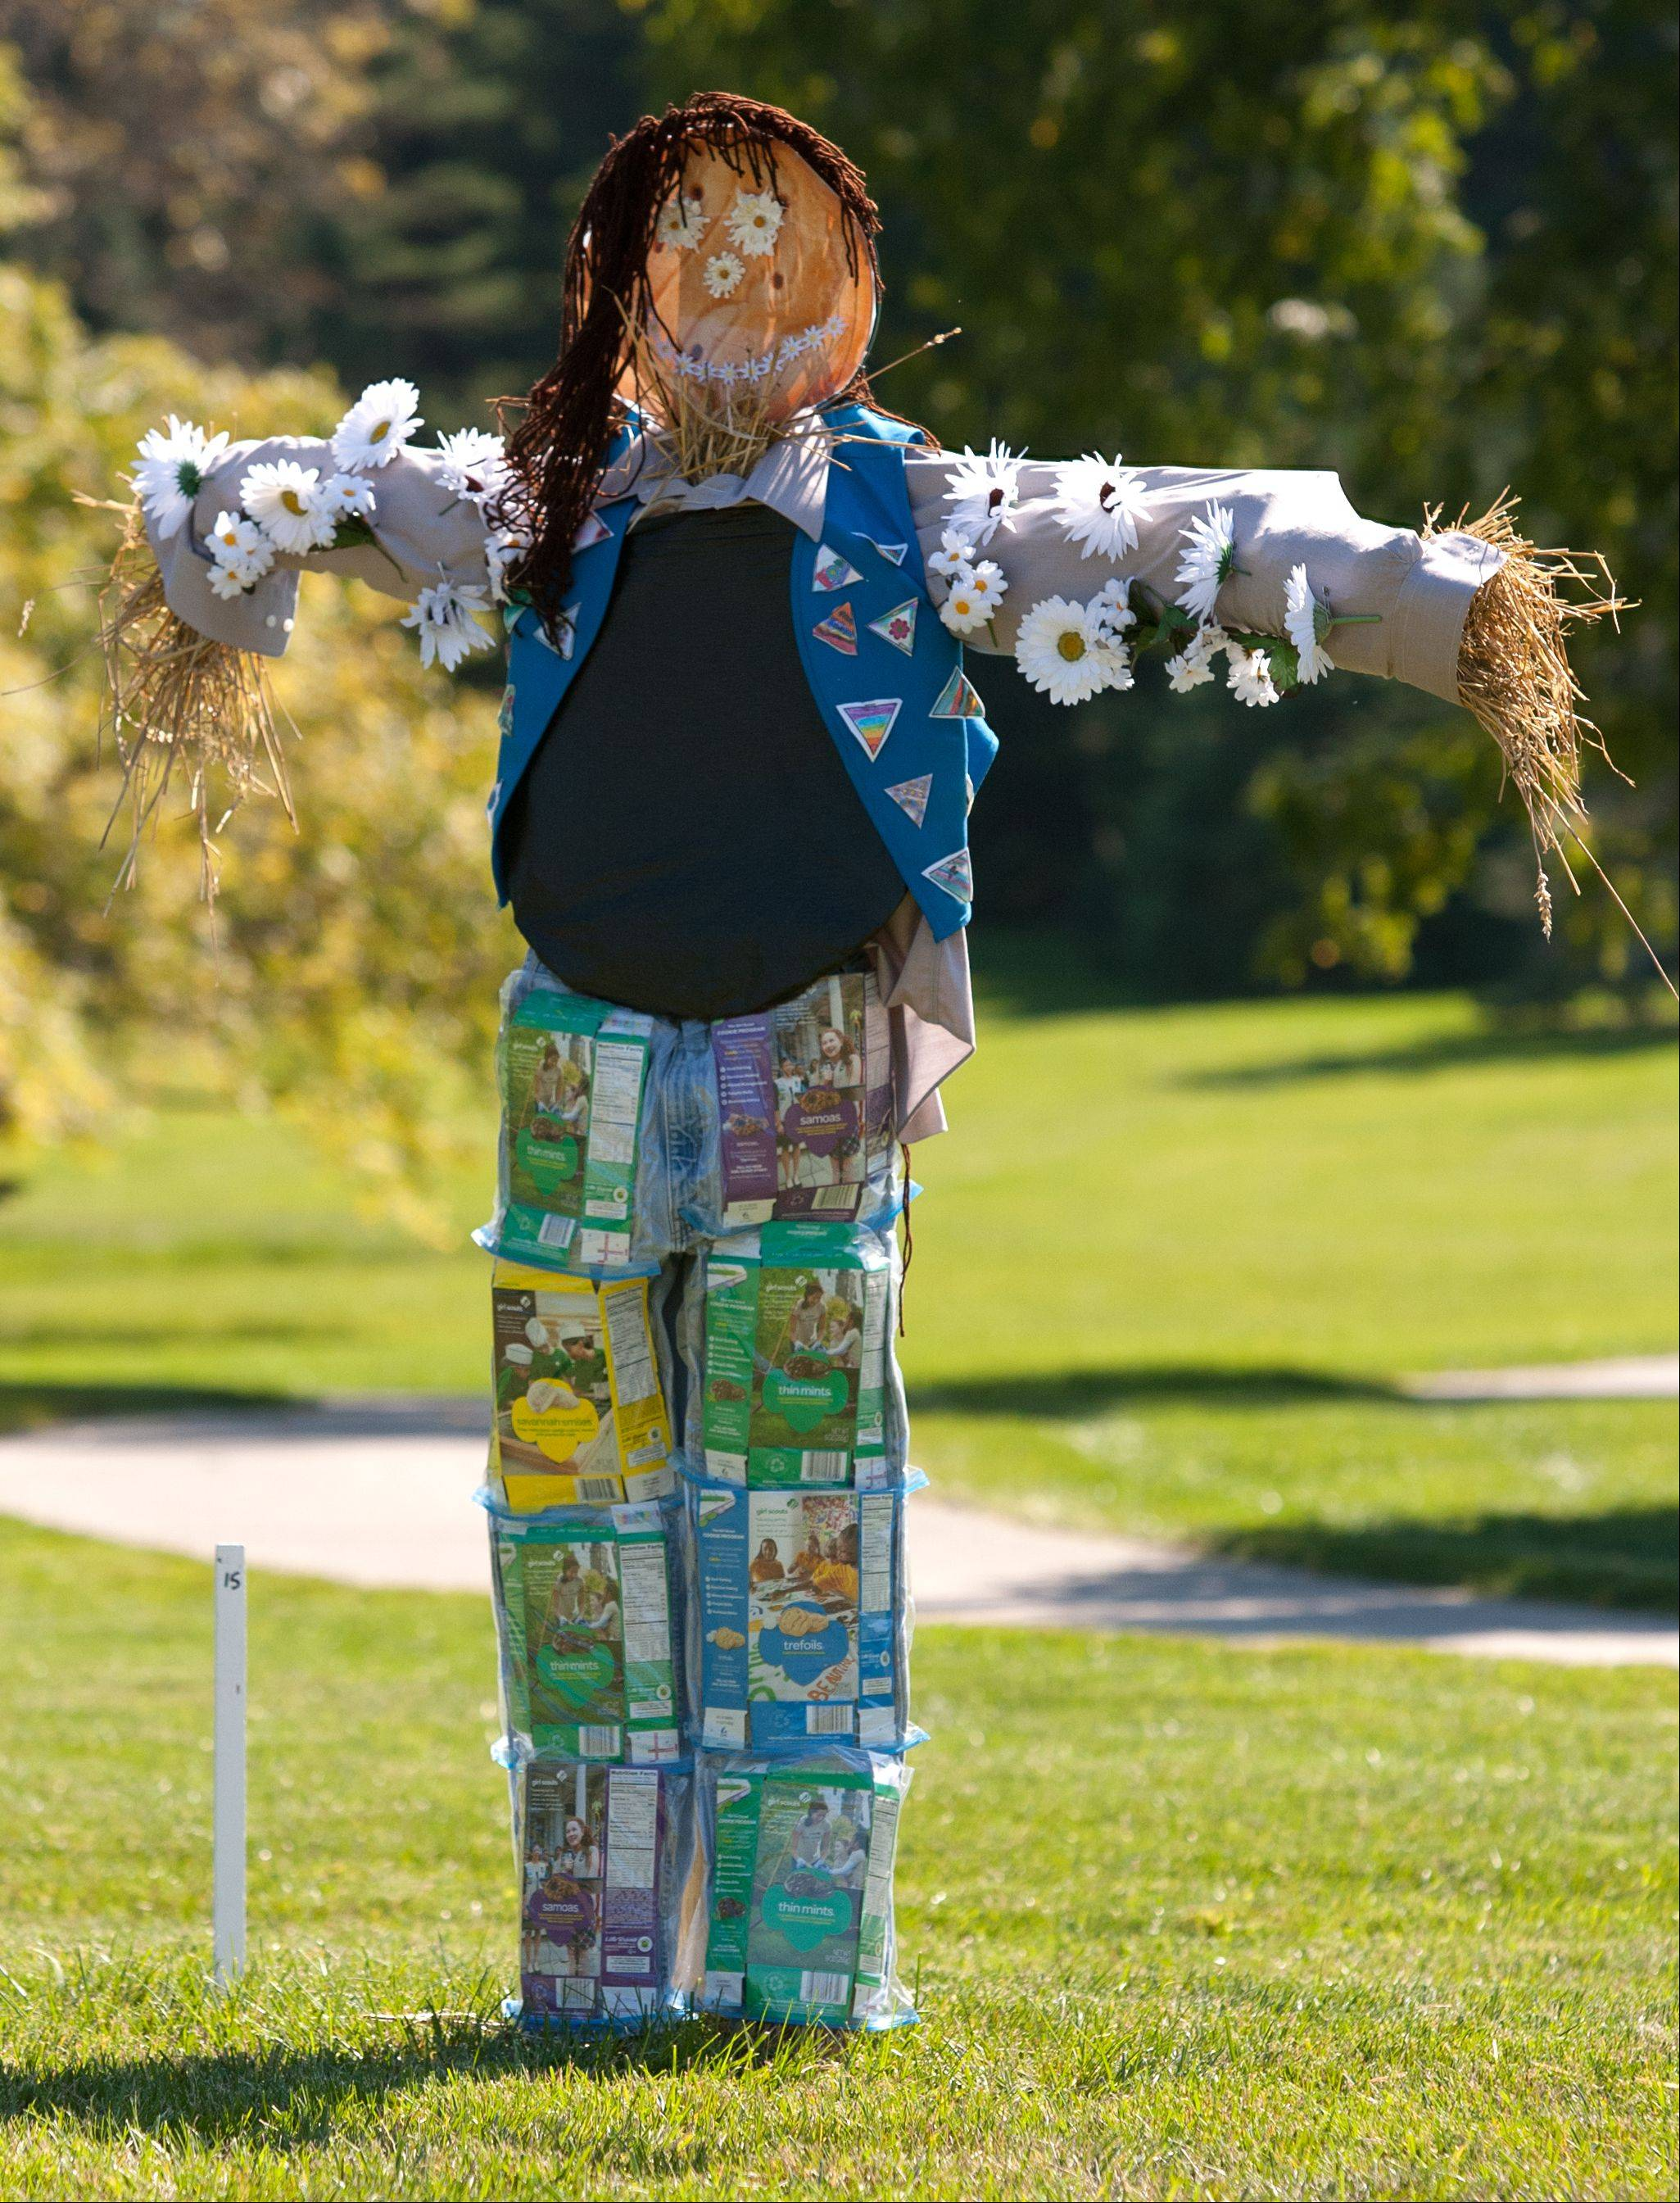 """Cookie Loving Scarecrow,"" designed by Scouts from Briar Glen Elementary School in Wheaton, is one of 45 scarecrows on display this month at the Morton Arboretum in Lisle."